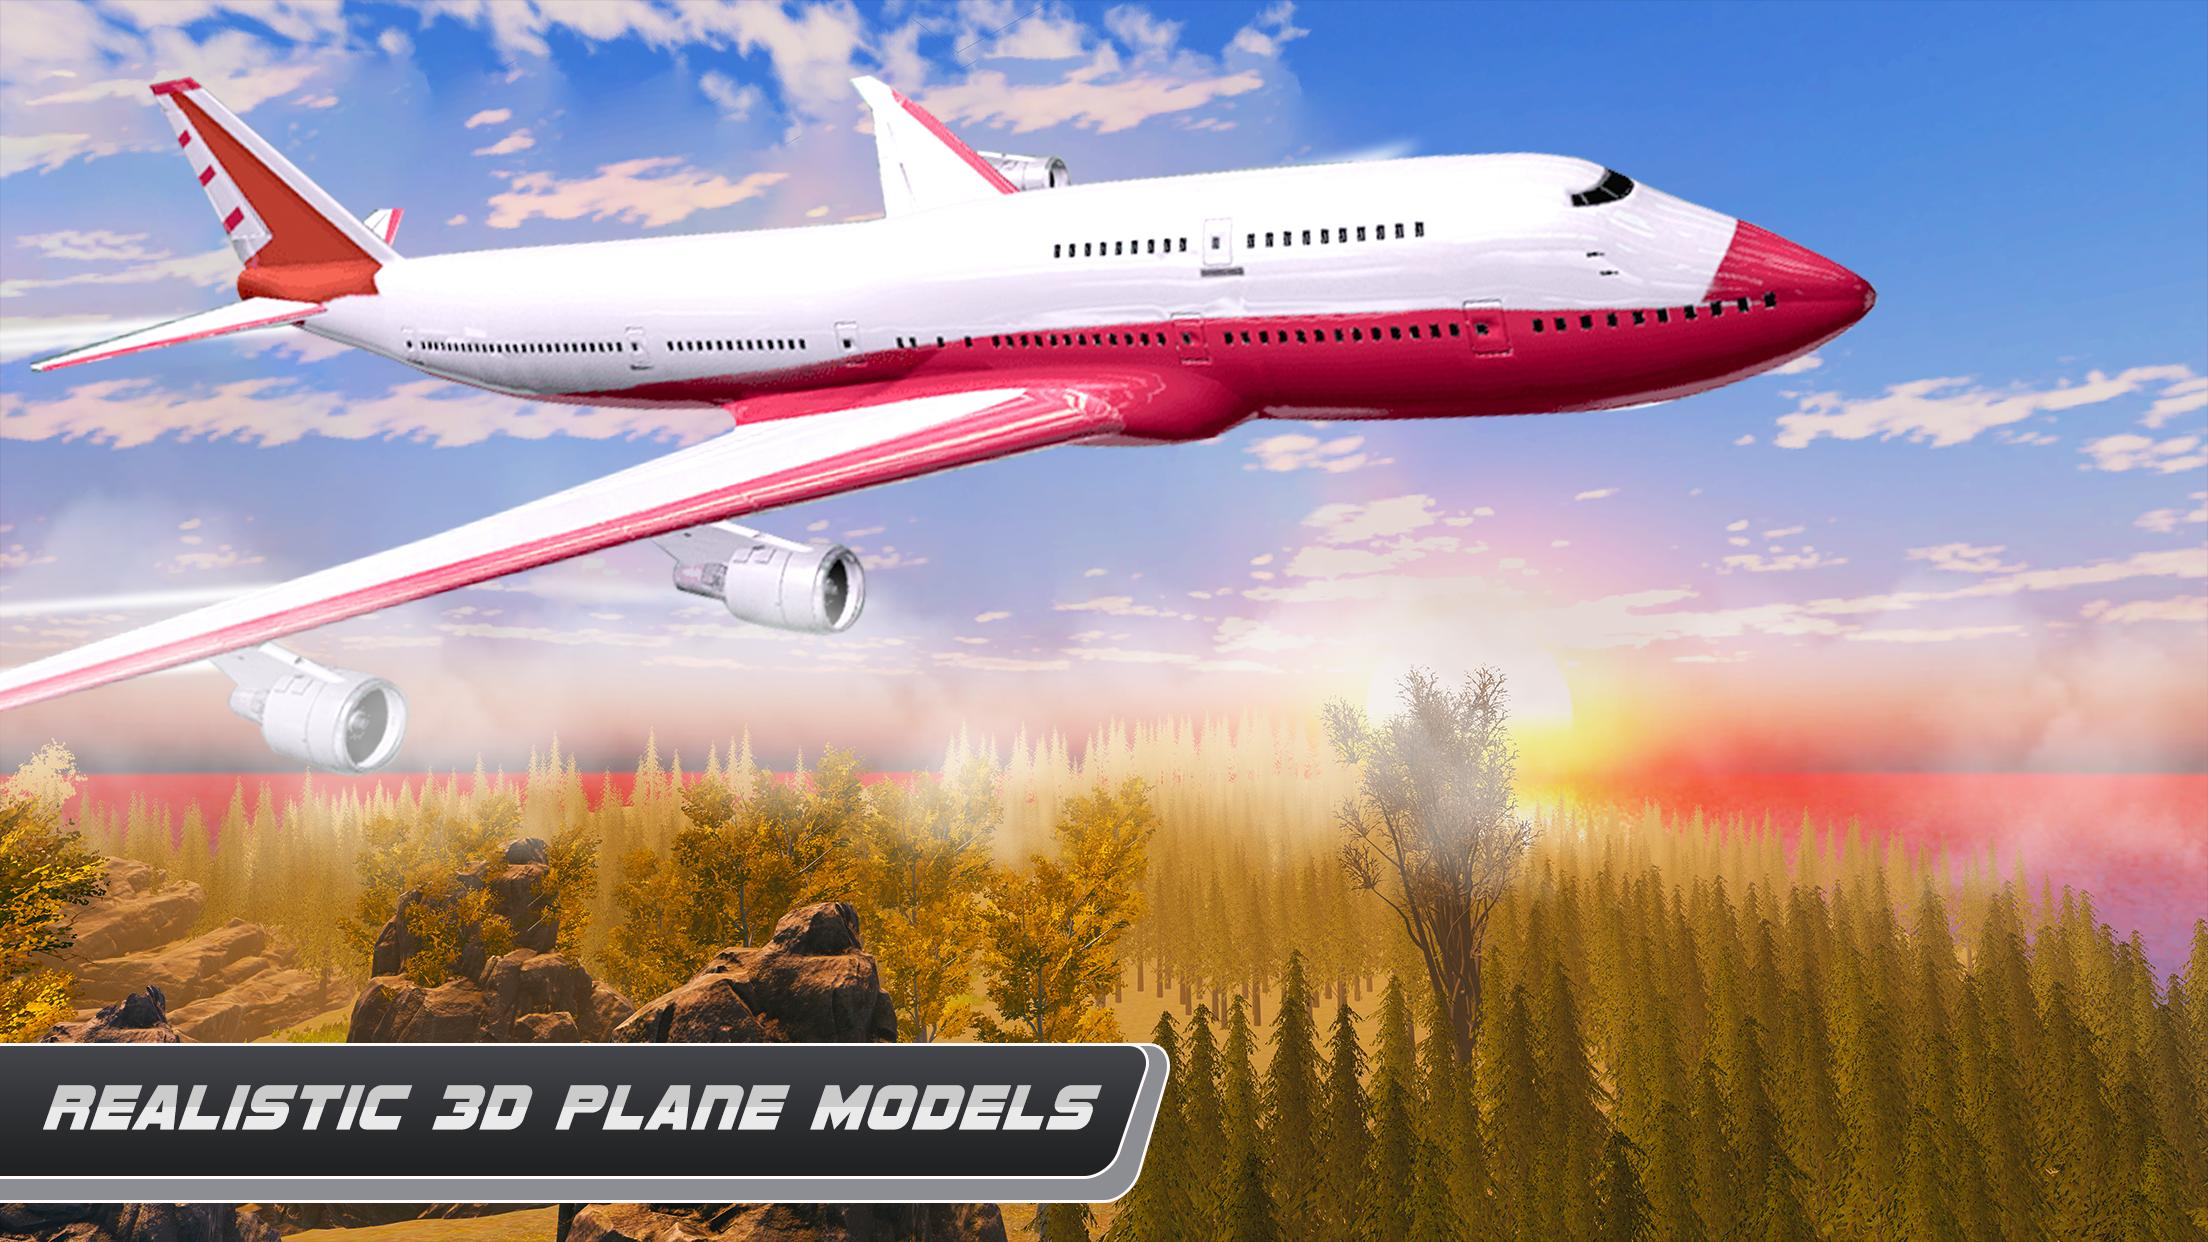 Airplane Real Flight Simulator 2020 Plane Games 5.4 Screenshot 6